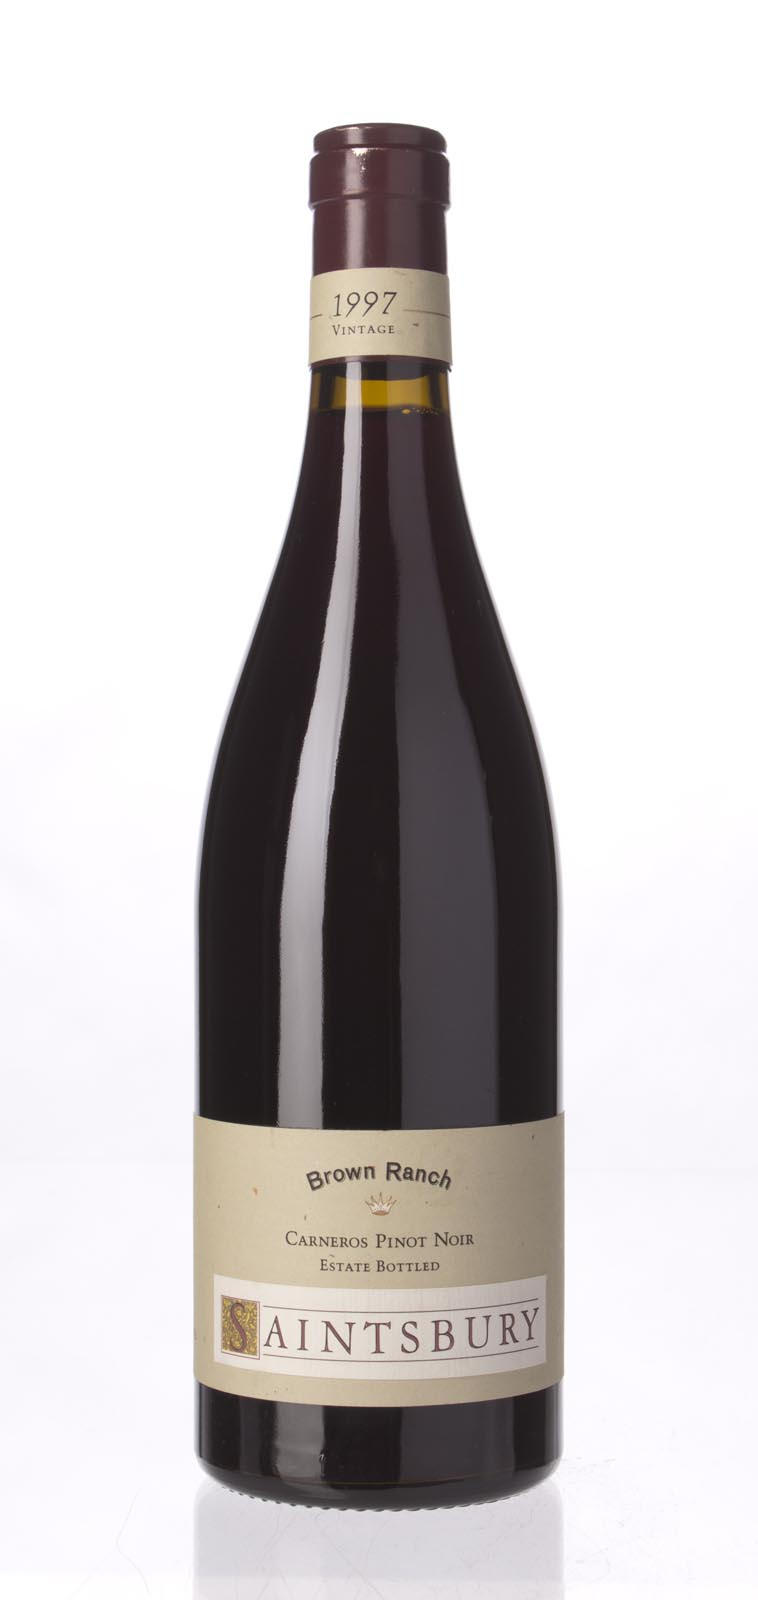 Saintsbury Pinot Noir Brown Ranch 1997, 750mL (WS92) from The BPW - Merchants of rare and fine wines.